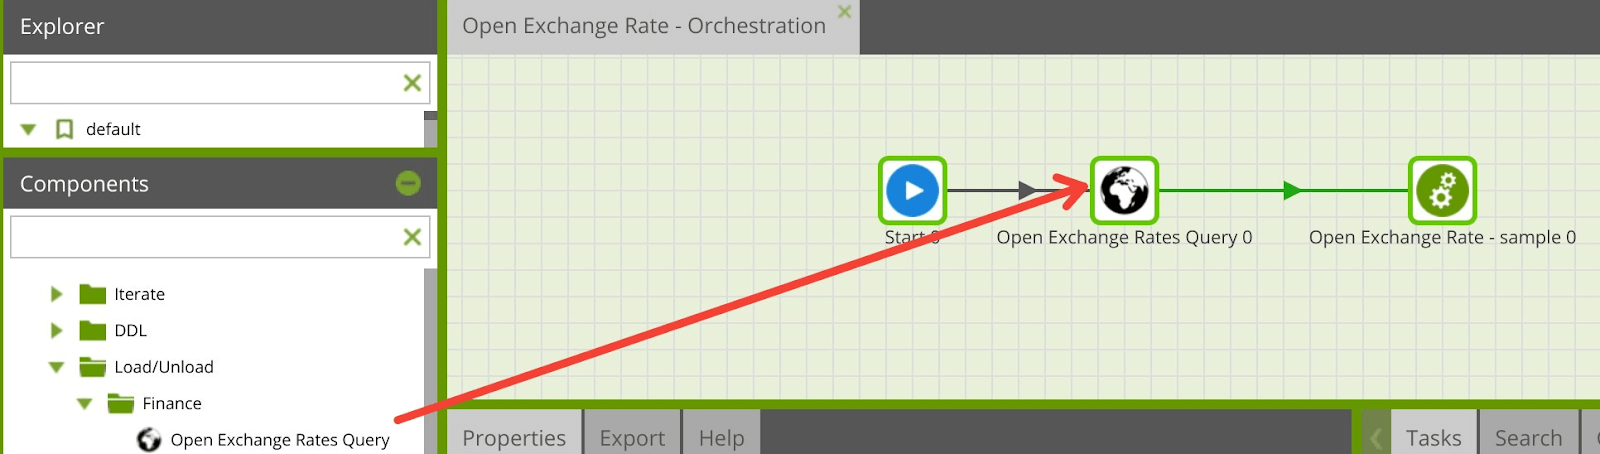 Using the Open Exchange Rates Query Component in Matillion ETL for Snowflake